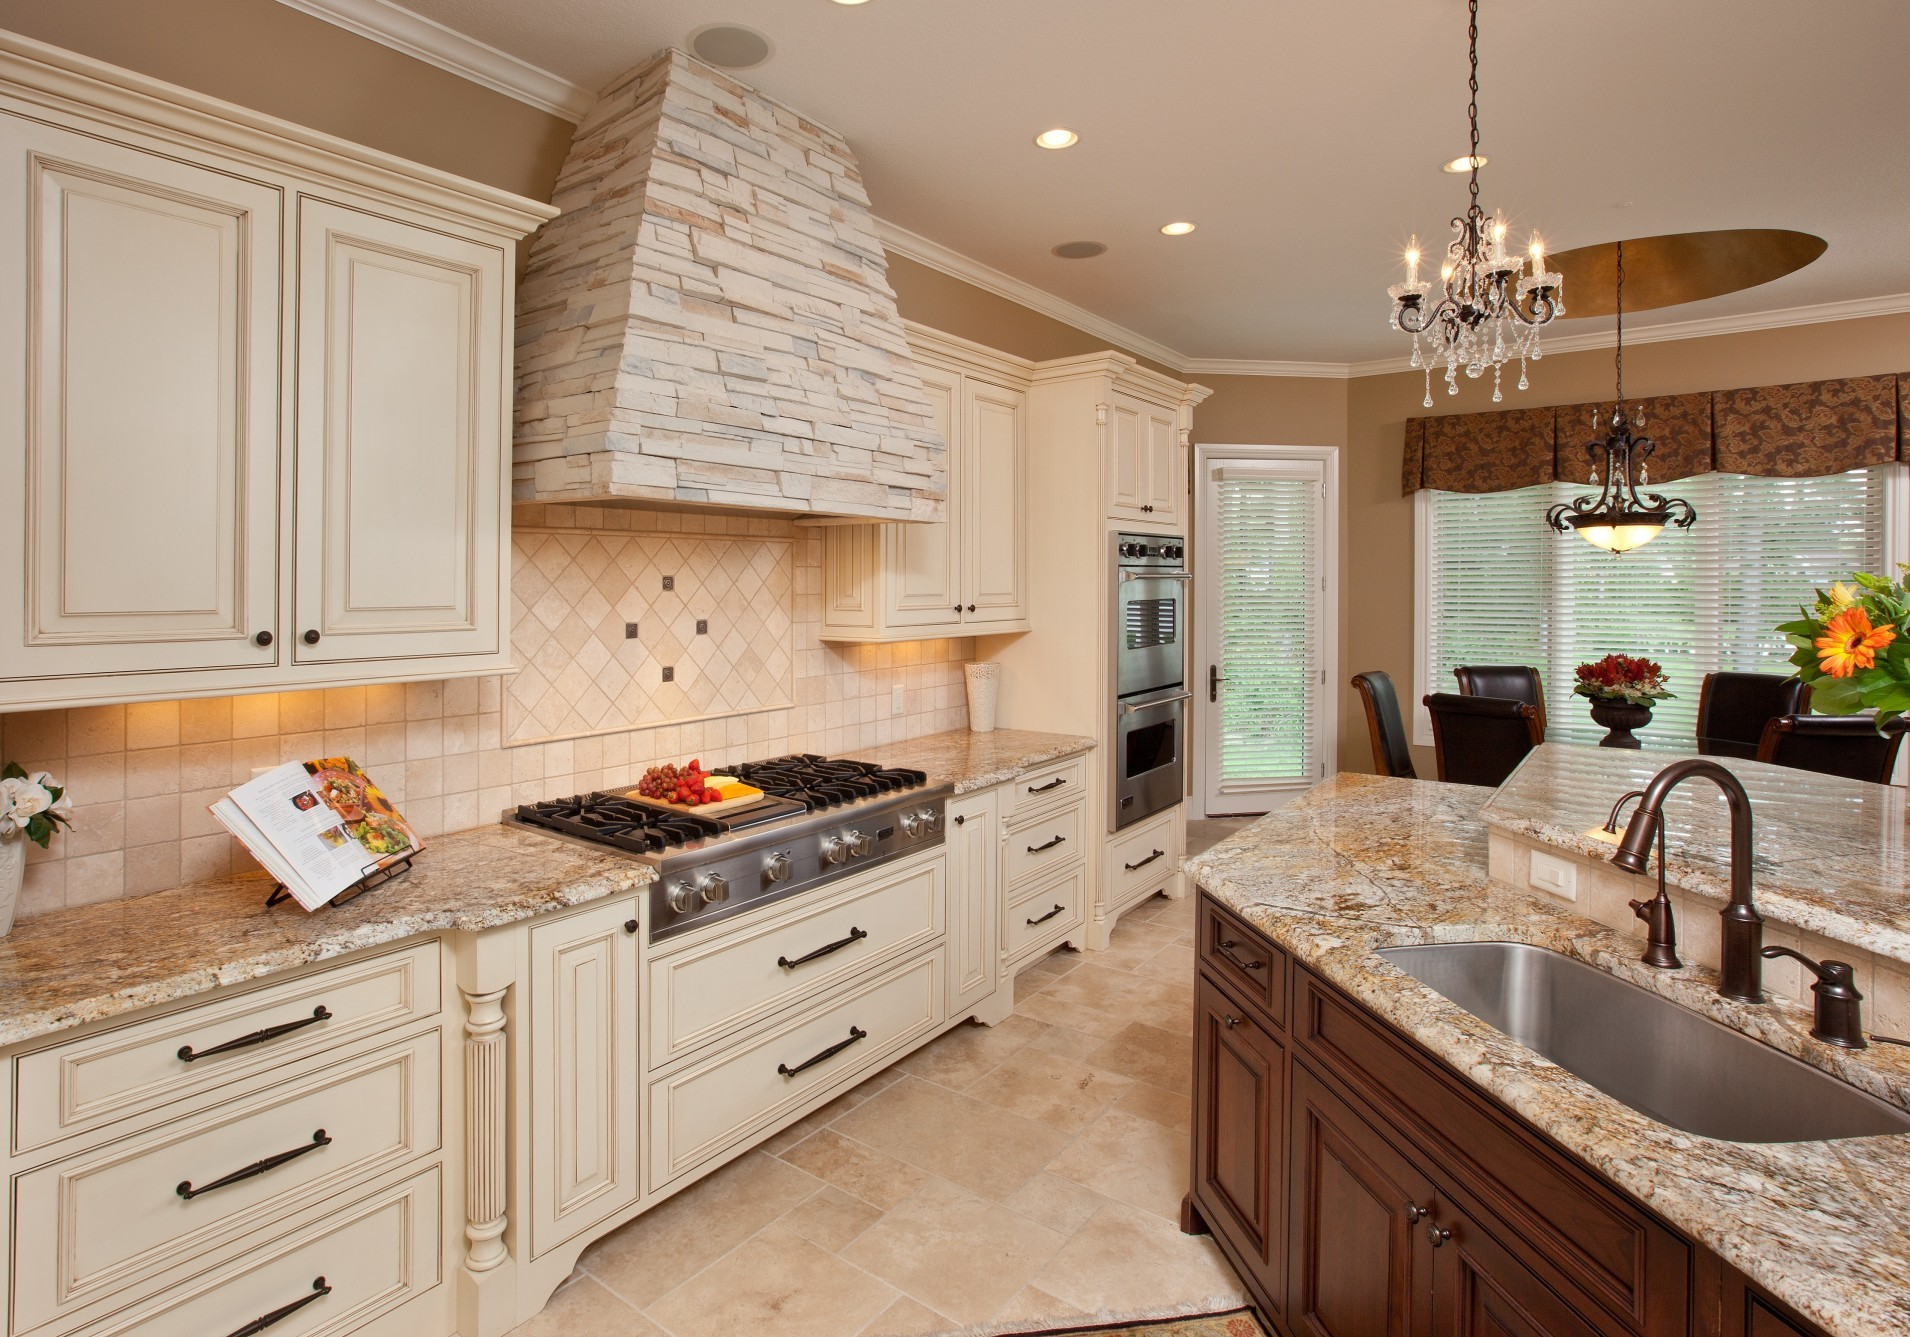 Best Kitchen Gallery: Holiday Kitchen Cabi S In Morton Illinois of Holiday Kitchen Cabinets on cal-ite.com